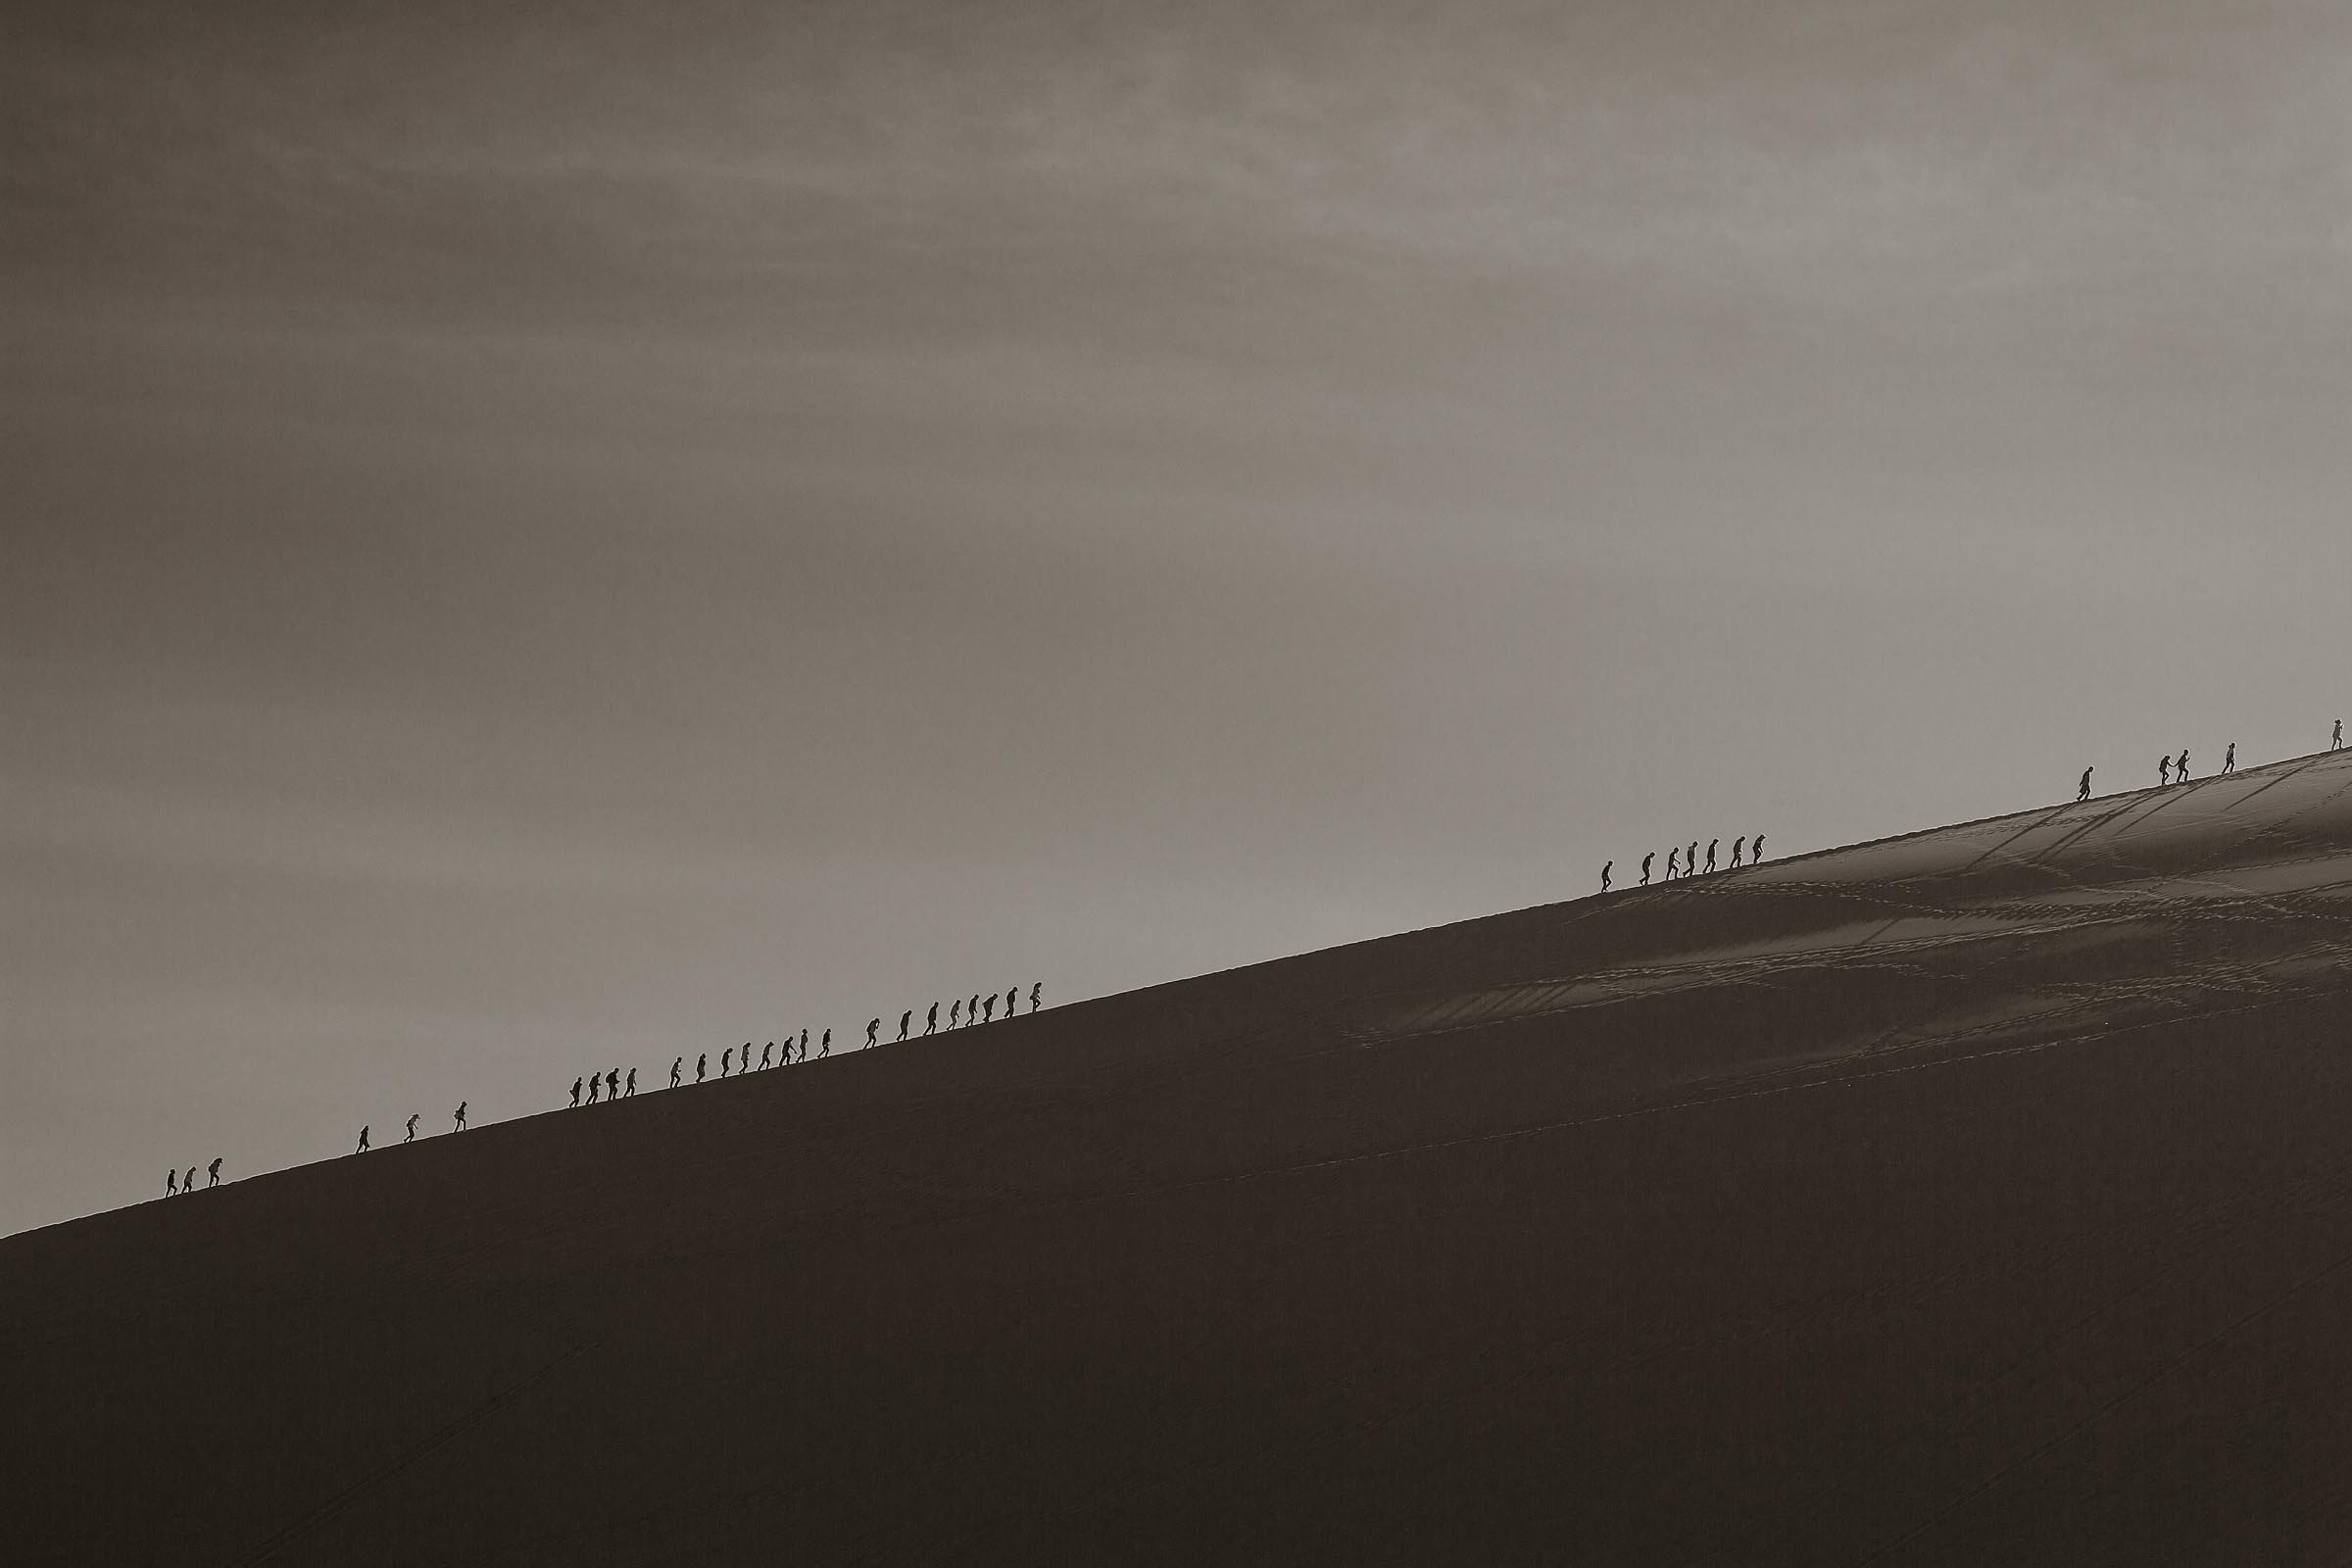 The ascent of men, women and children up large sand dune called Singing Sand Mountain in Dunhuang.